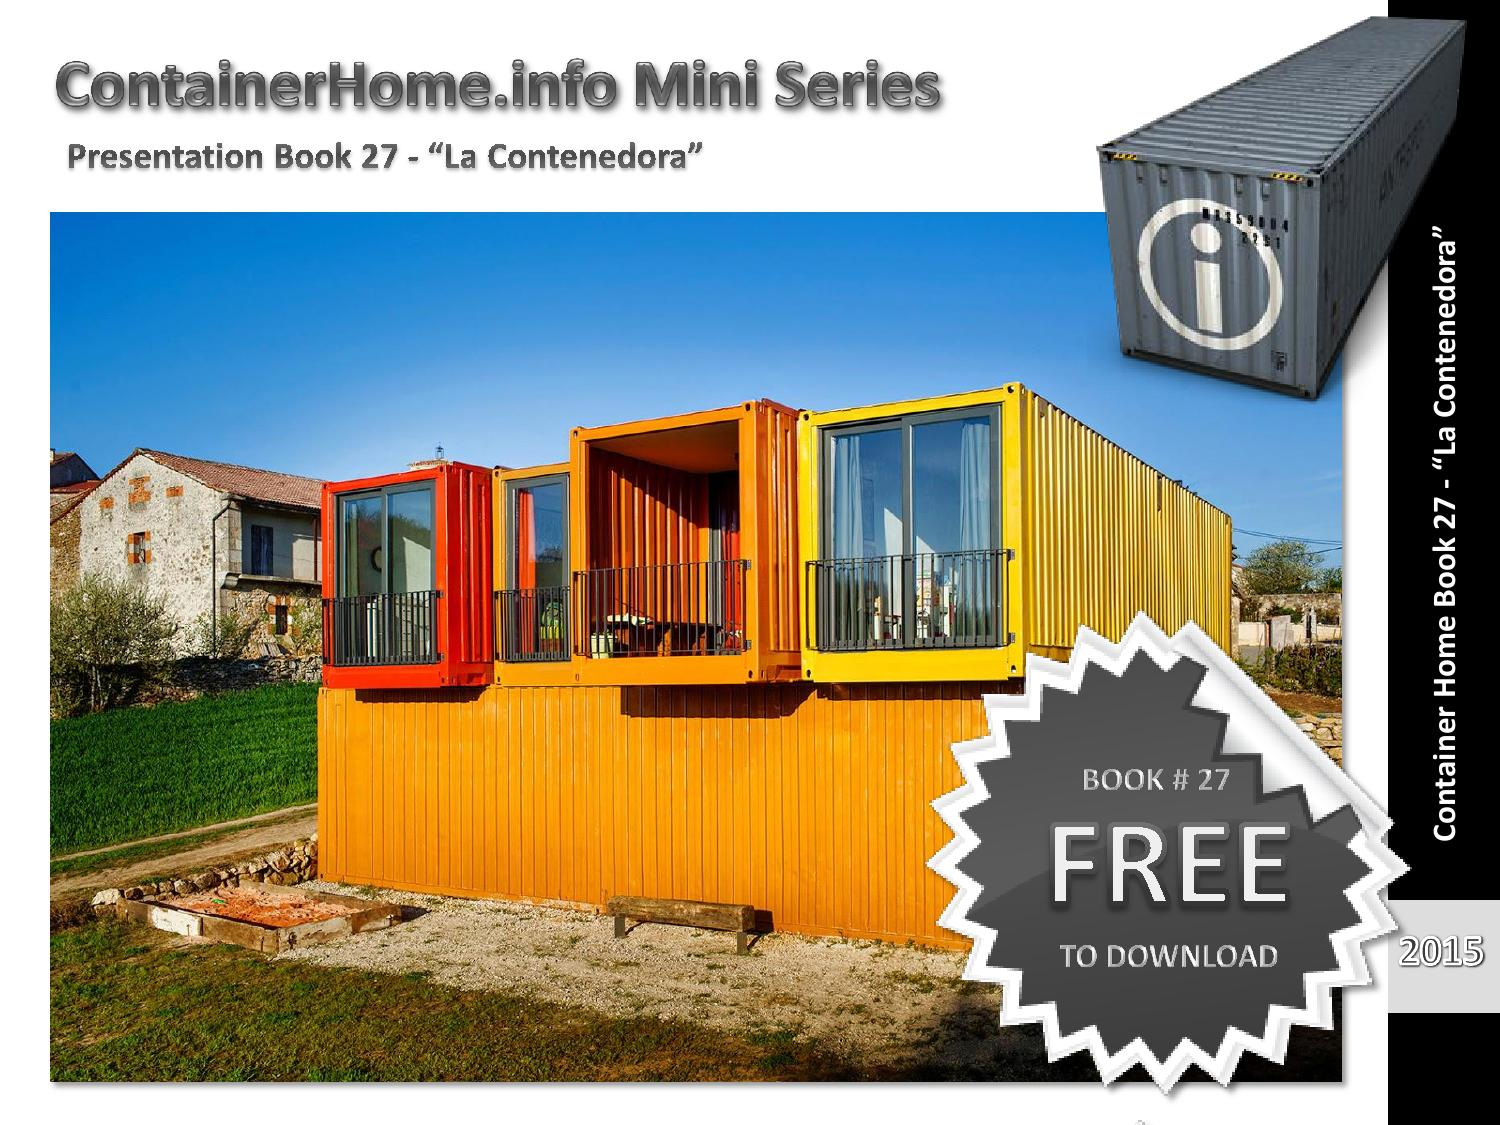 Shipping container homes book 27 by shippingcontainerhomes issuu - Shipping container homes chicago ...